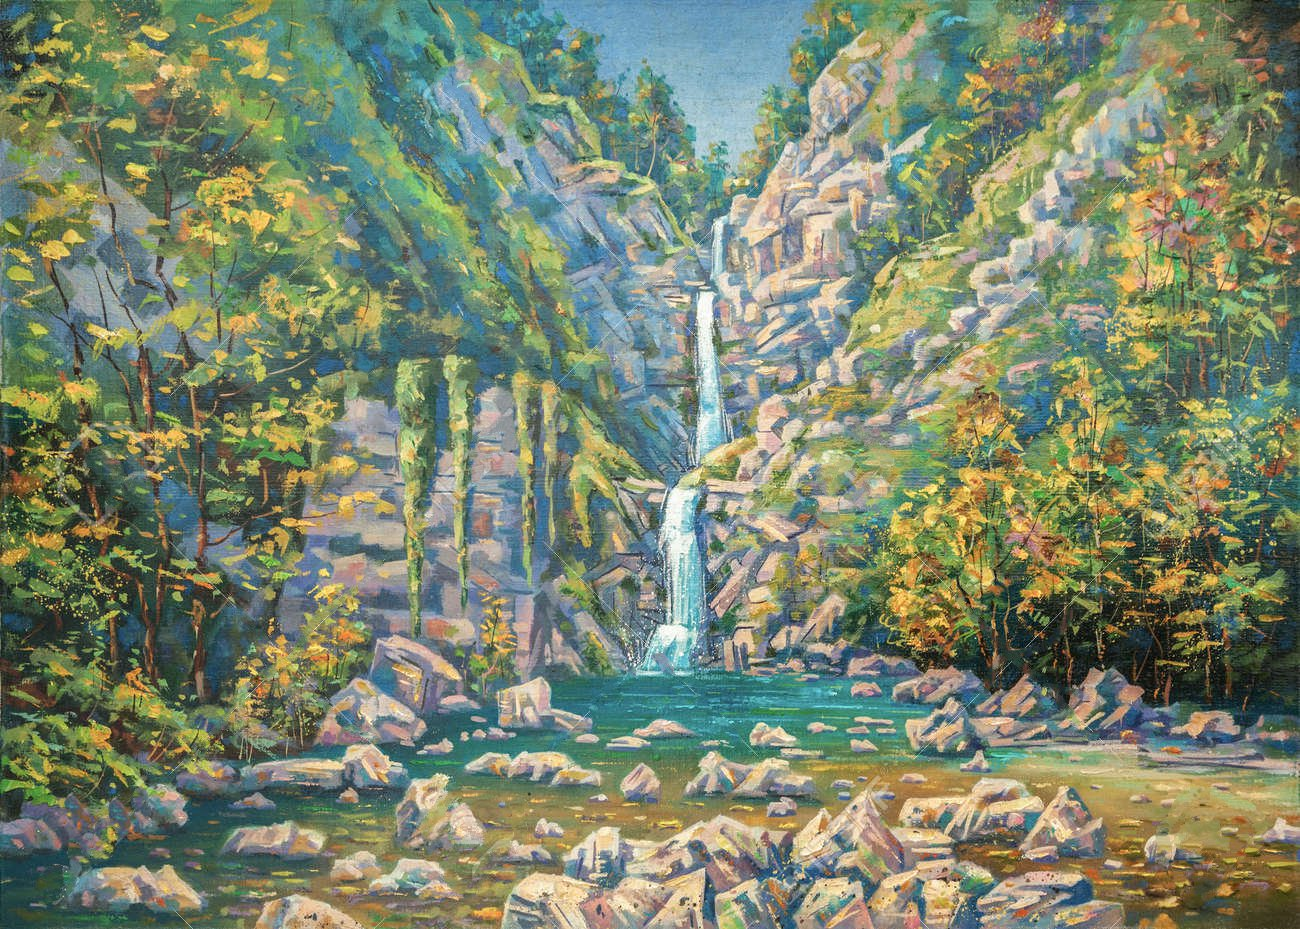 106492358-mountainous-summer-landscape-with-a-three-stage-waterfall-nameless-sochi-national-park-painting-oil.jpg